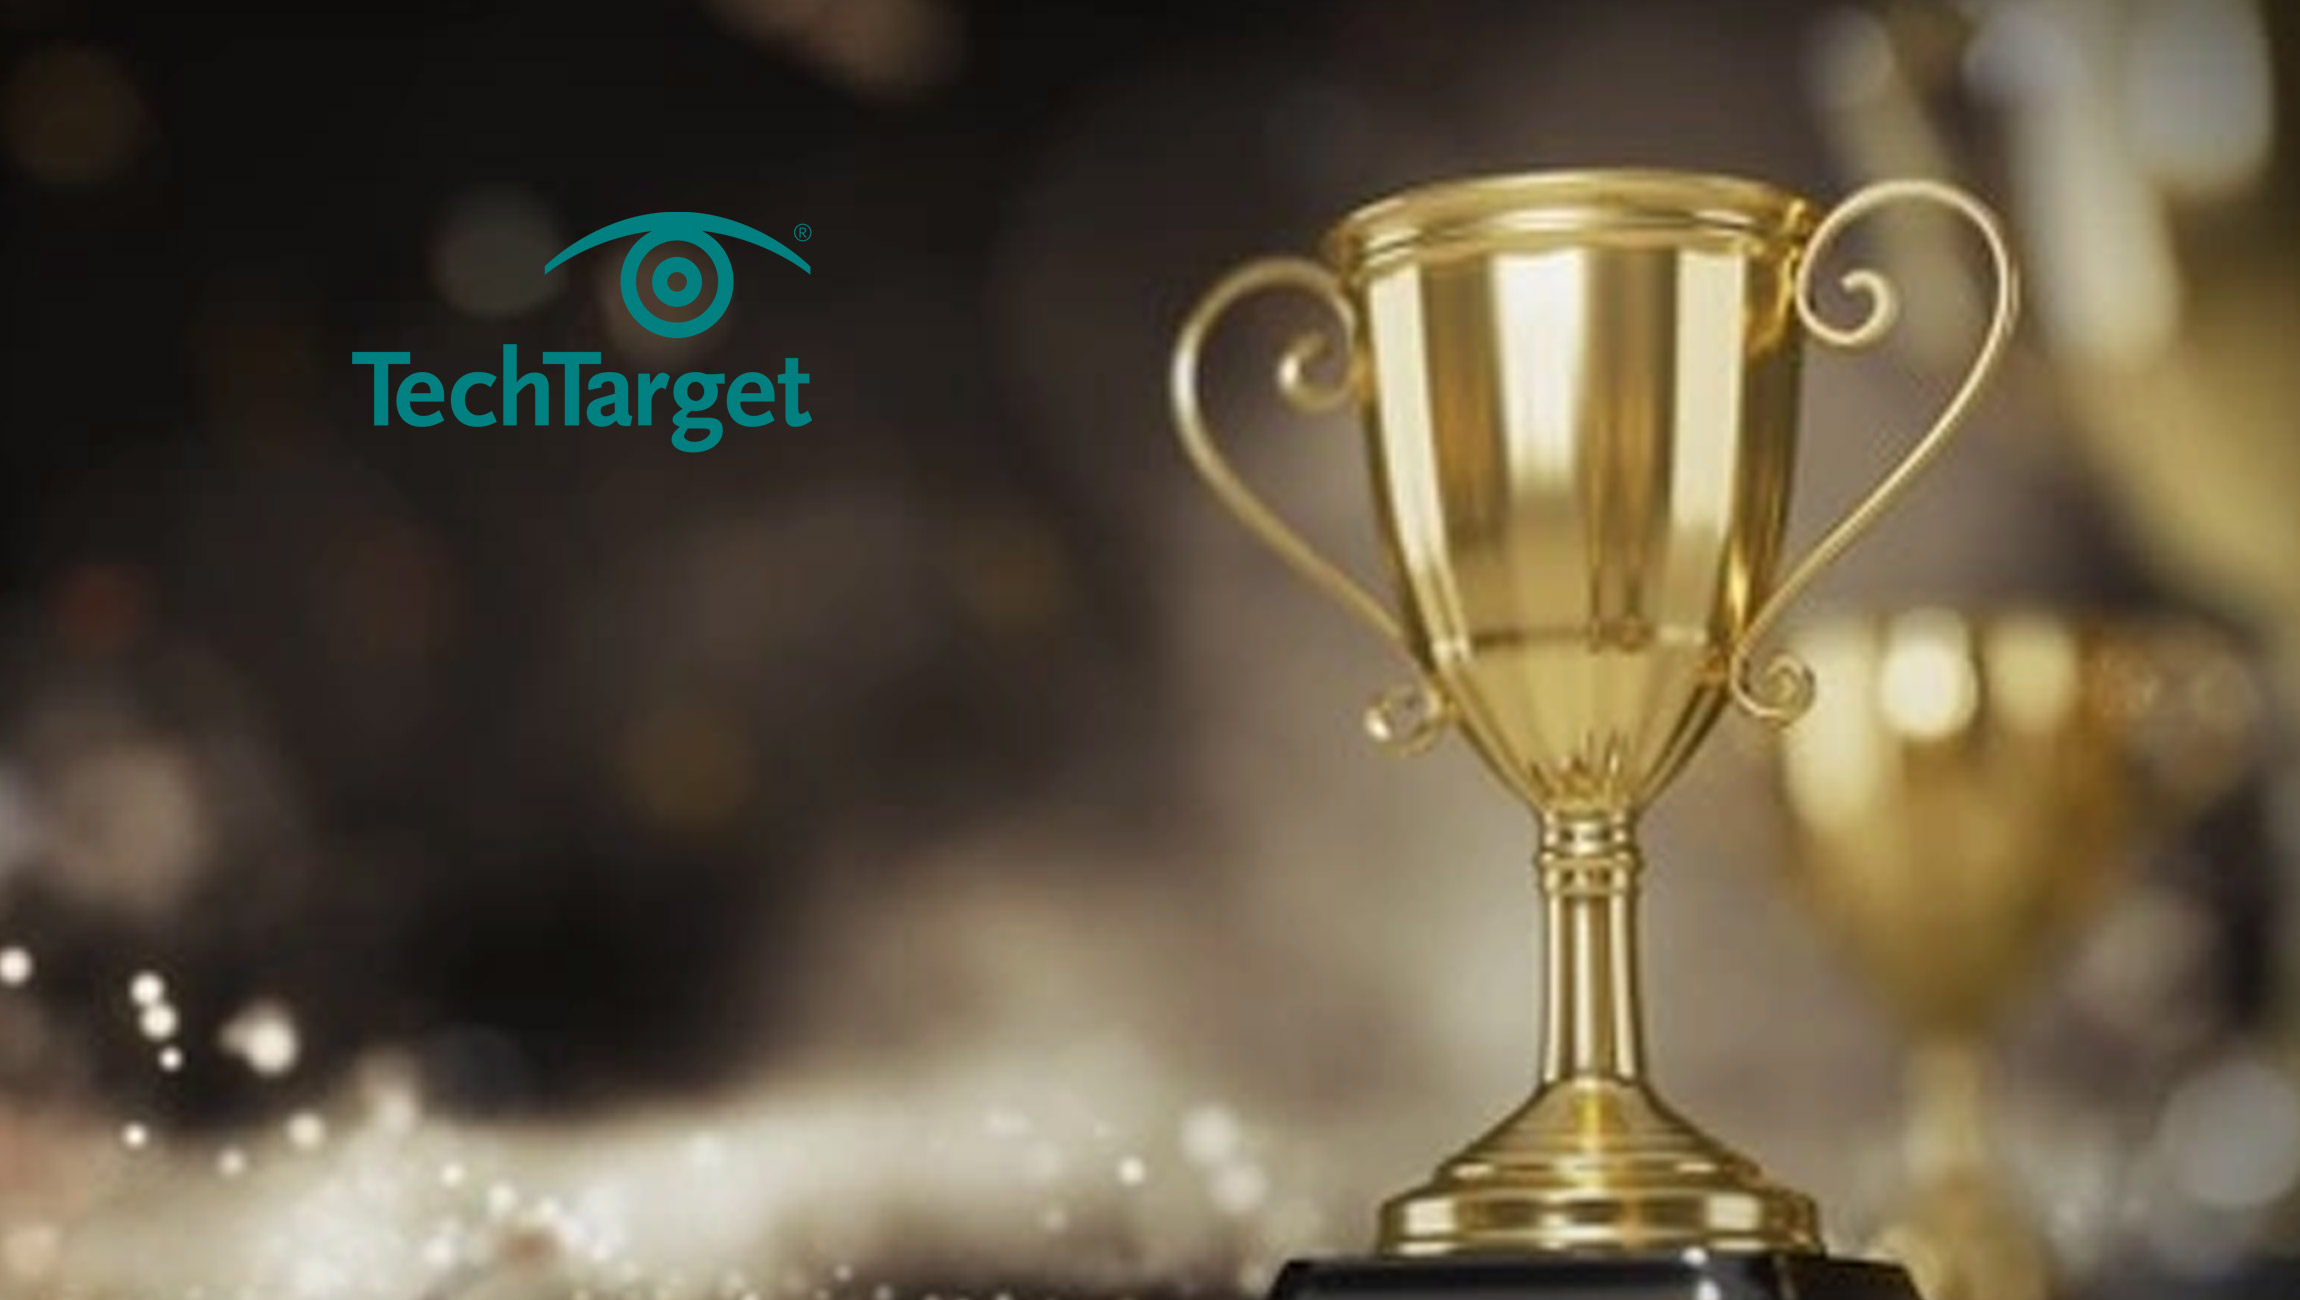 TechTarget Wins 2021 SIIA CODiE Award for Best Sales & Marketing Intelligence Solution